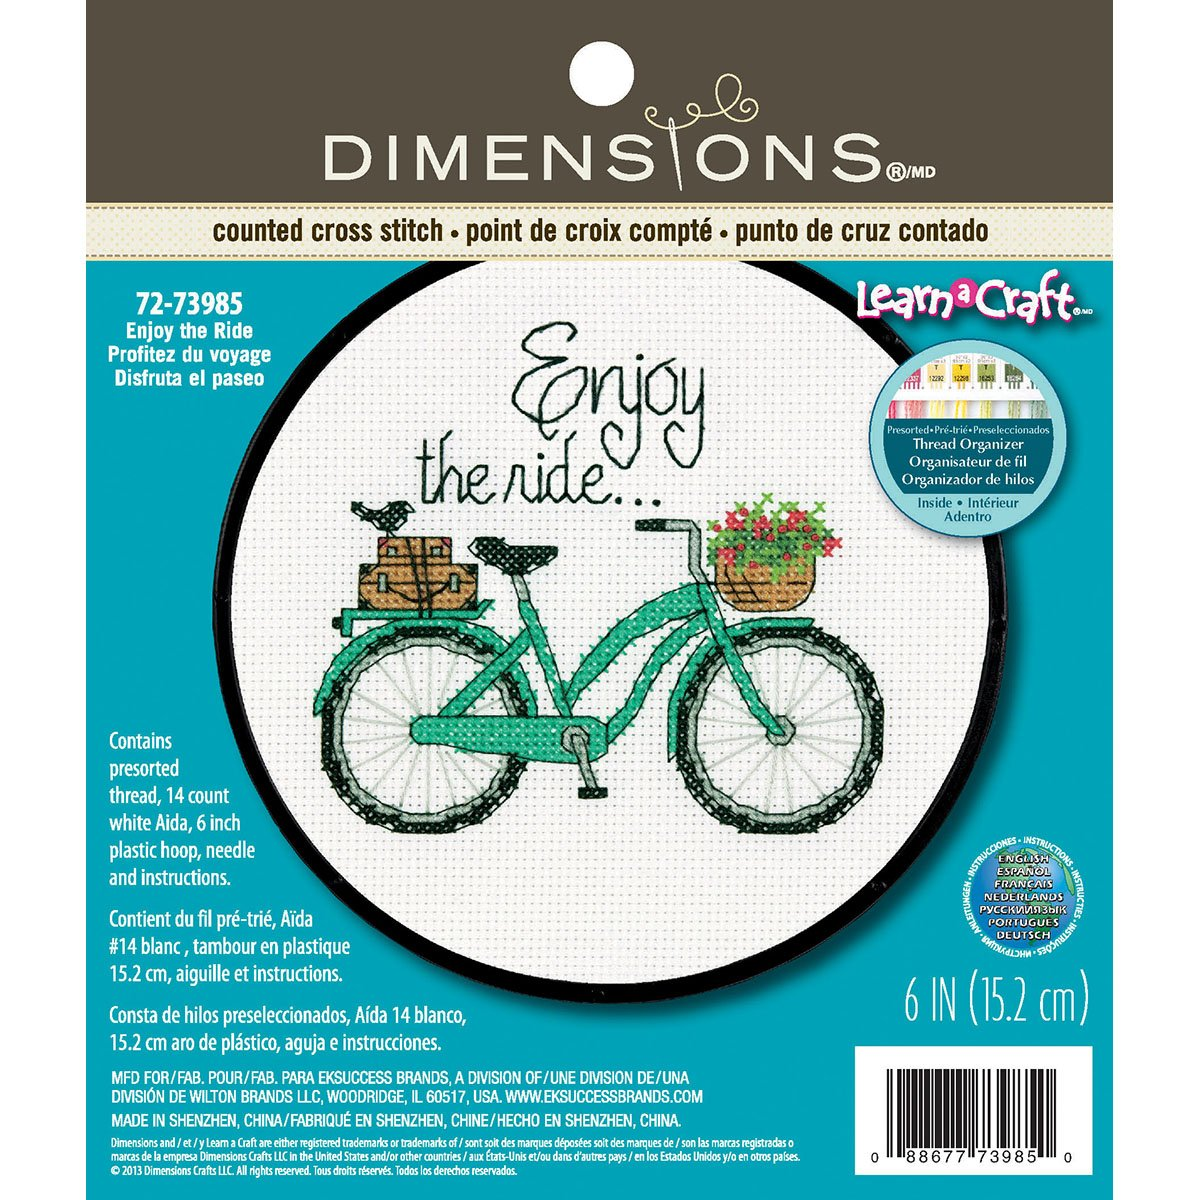 Dimensions Crafts 72-73985 Adult Learn a Craft Counted Cross Stitch, Enjoy The Ride